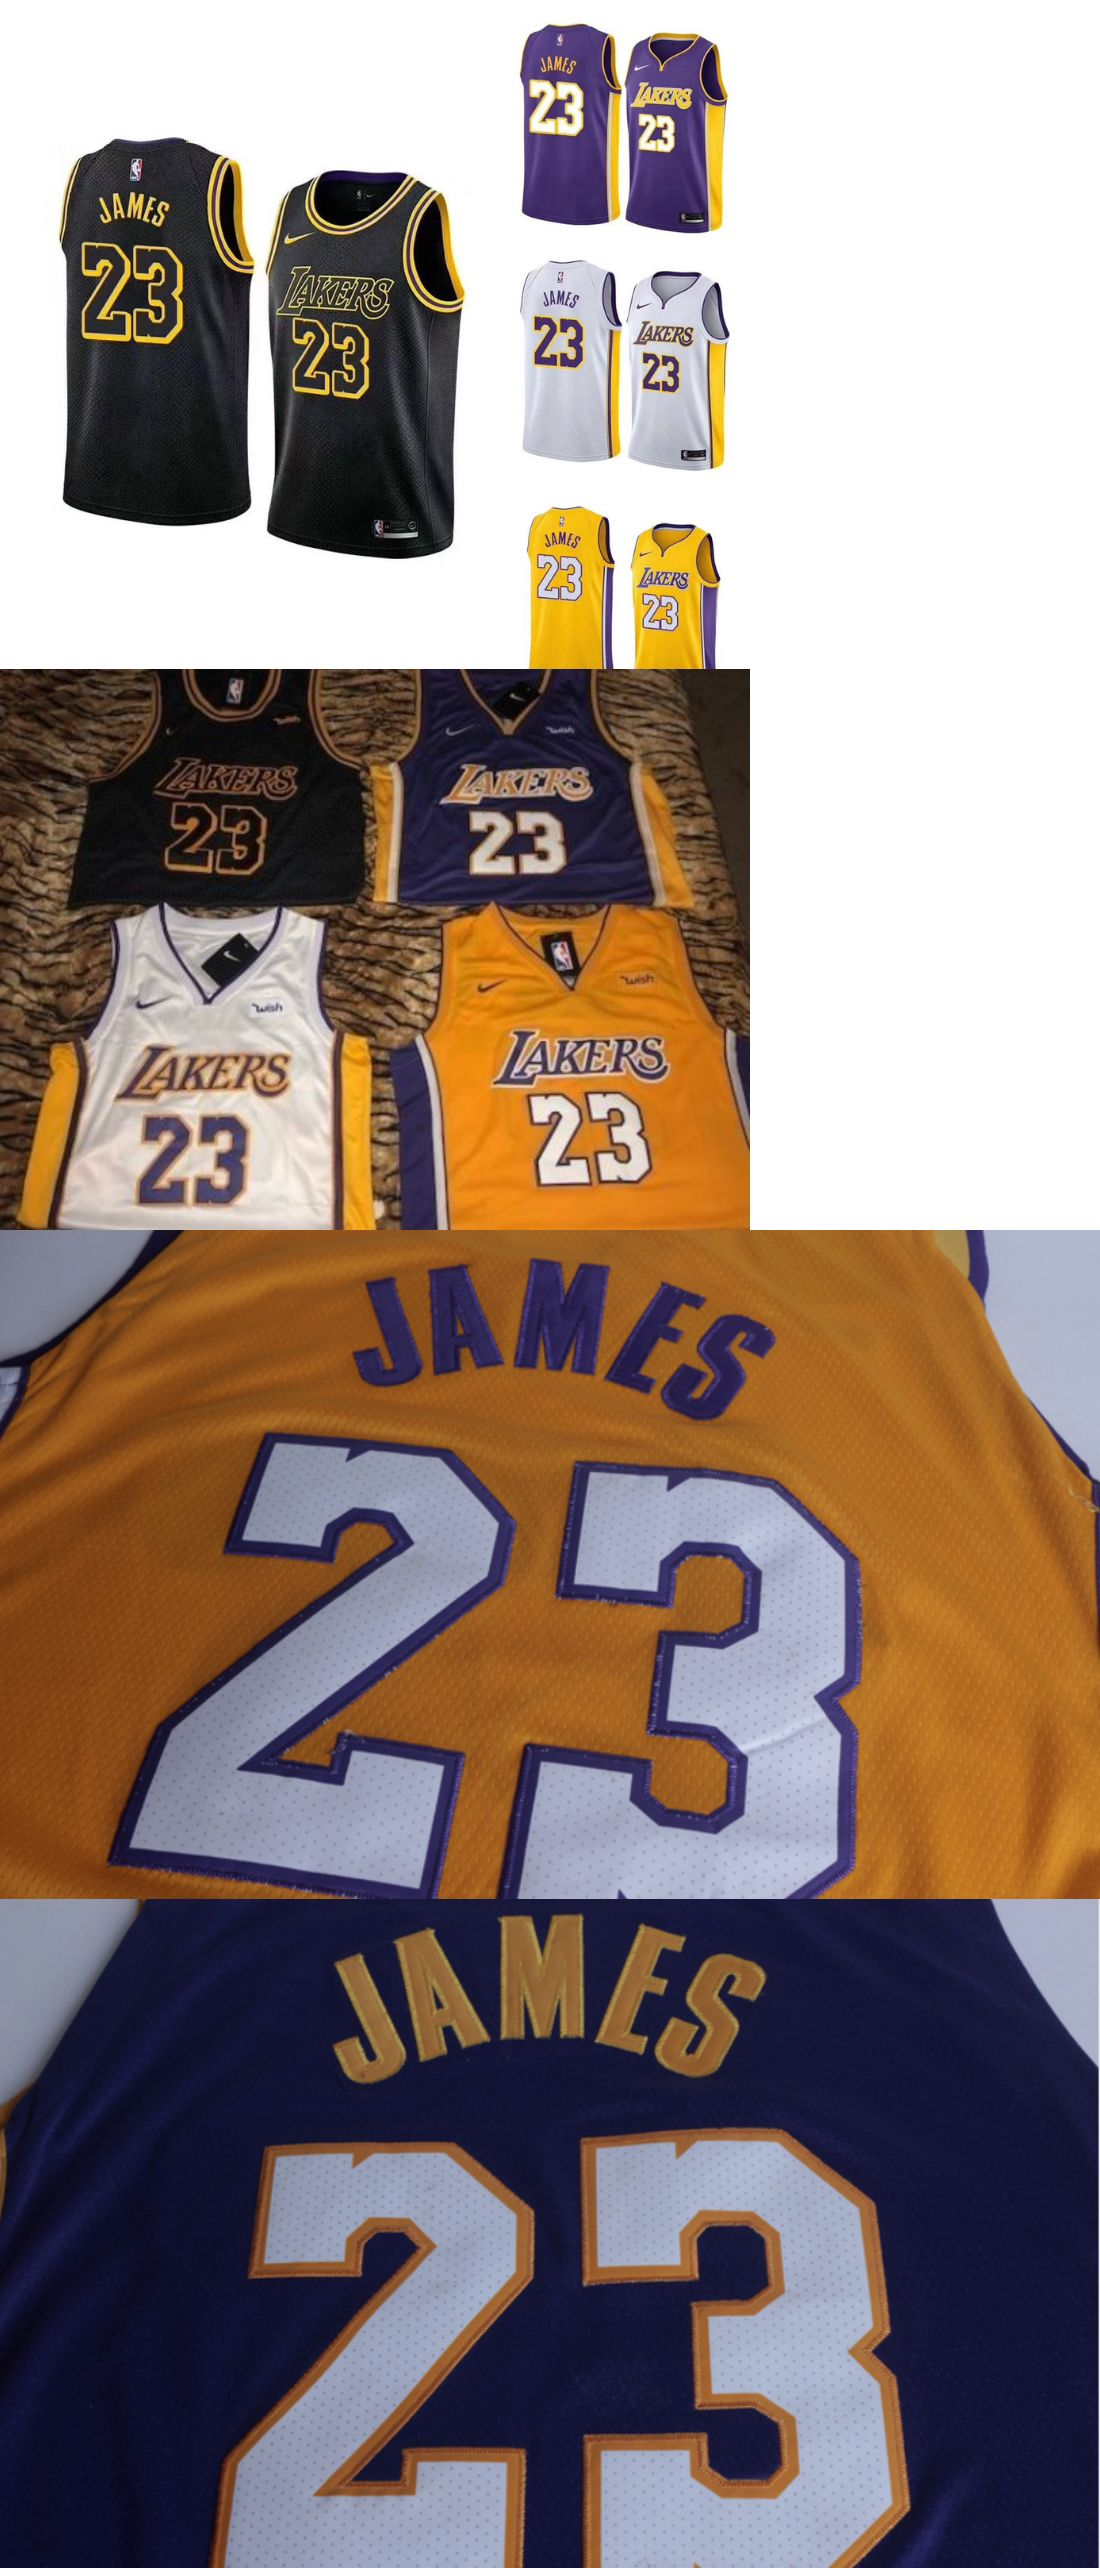 57d1709dc Basketball 21194  Lebron James 23 Los Angeles Lakers Jerseys Edition  Swingman Stitched 4 Color Nwt -  BUY IT NOW ONLY   35.99 on eBay!